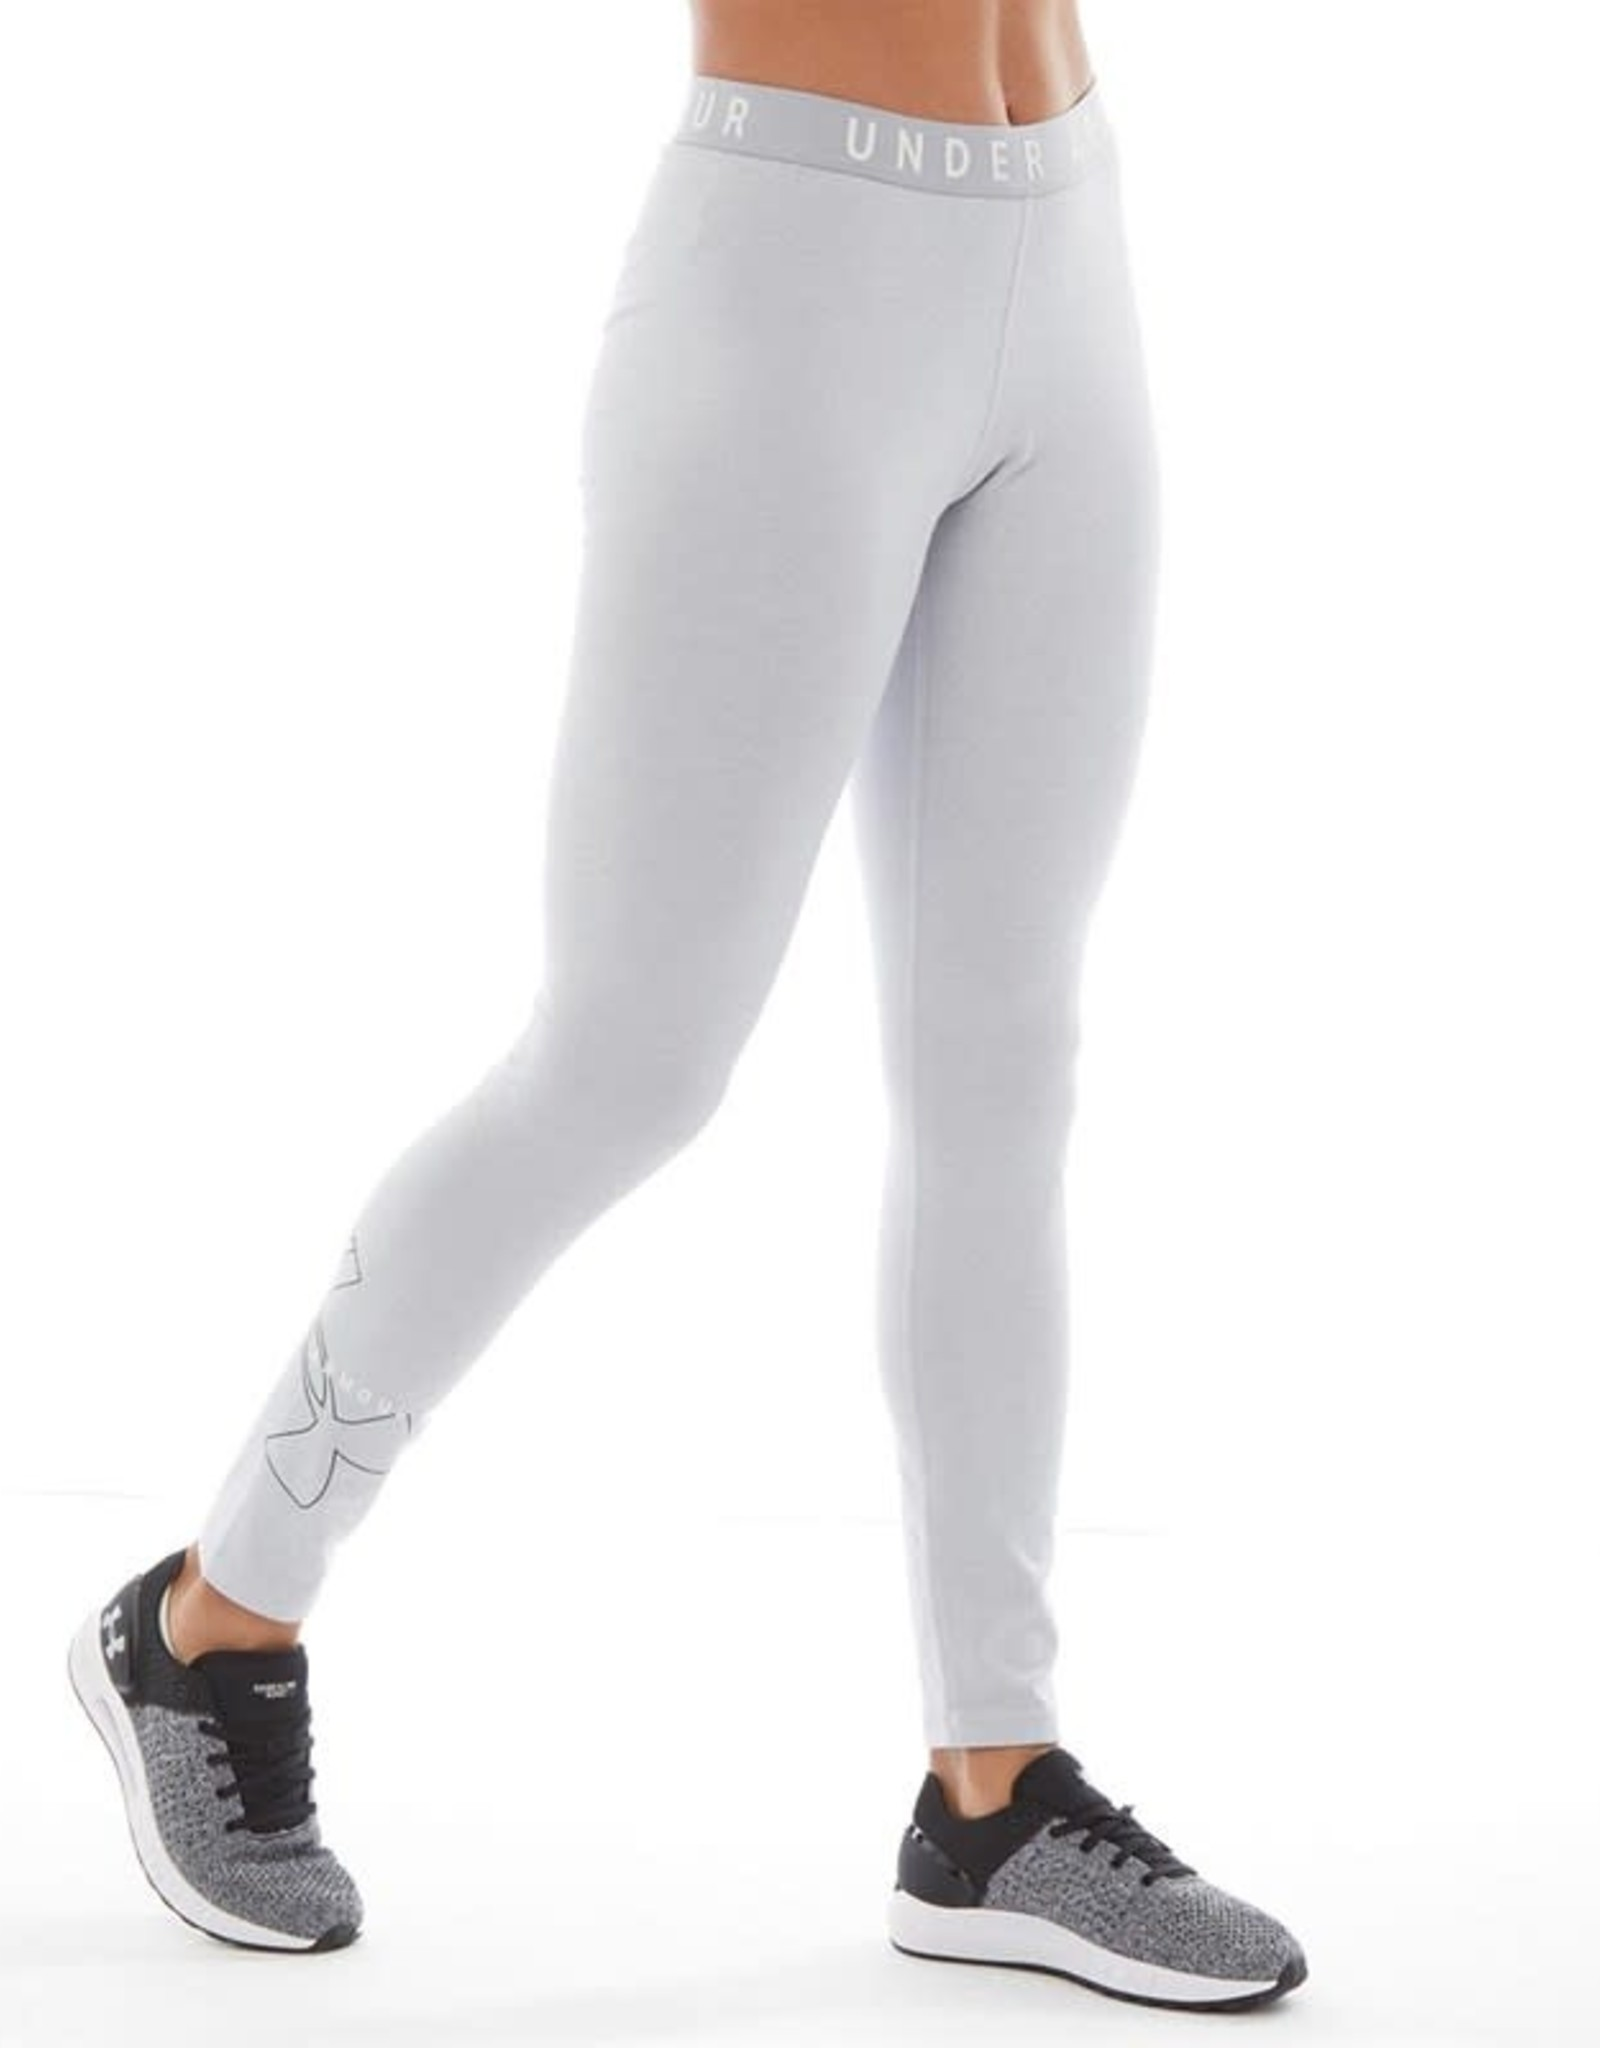 Under Armour Favorite Big Logo Legging - grey